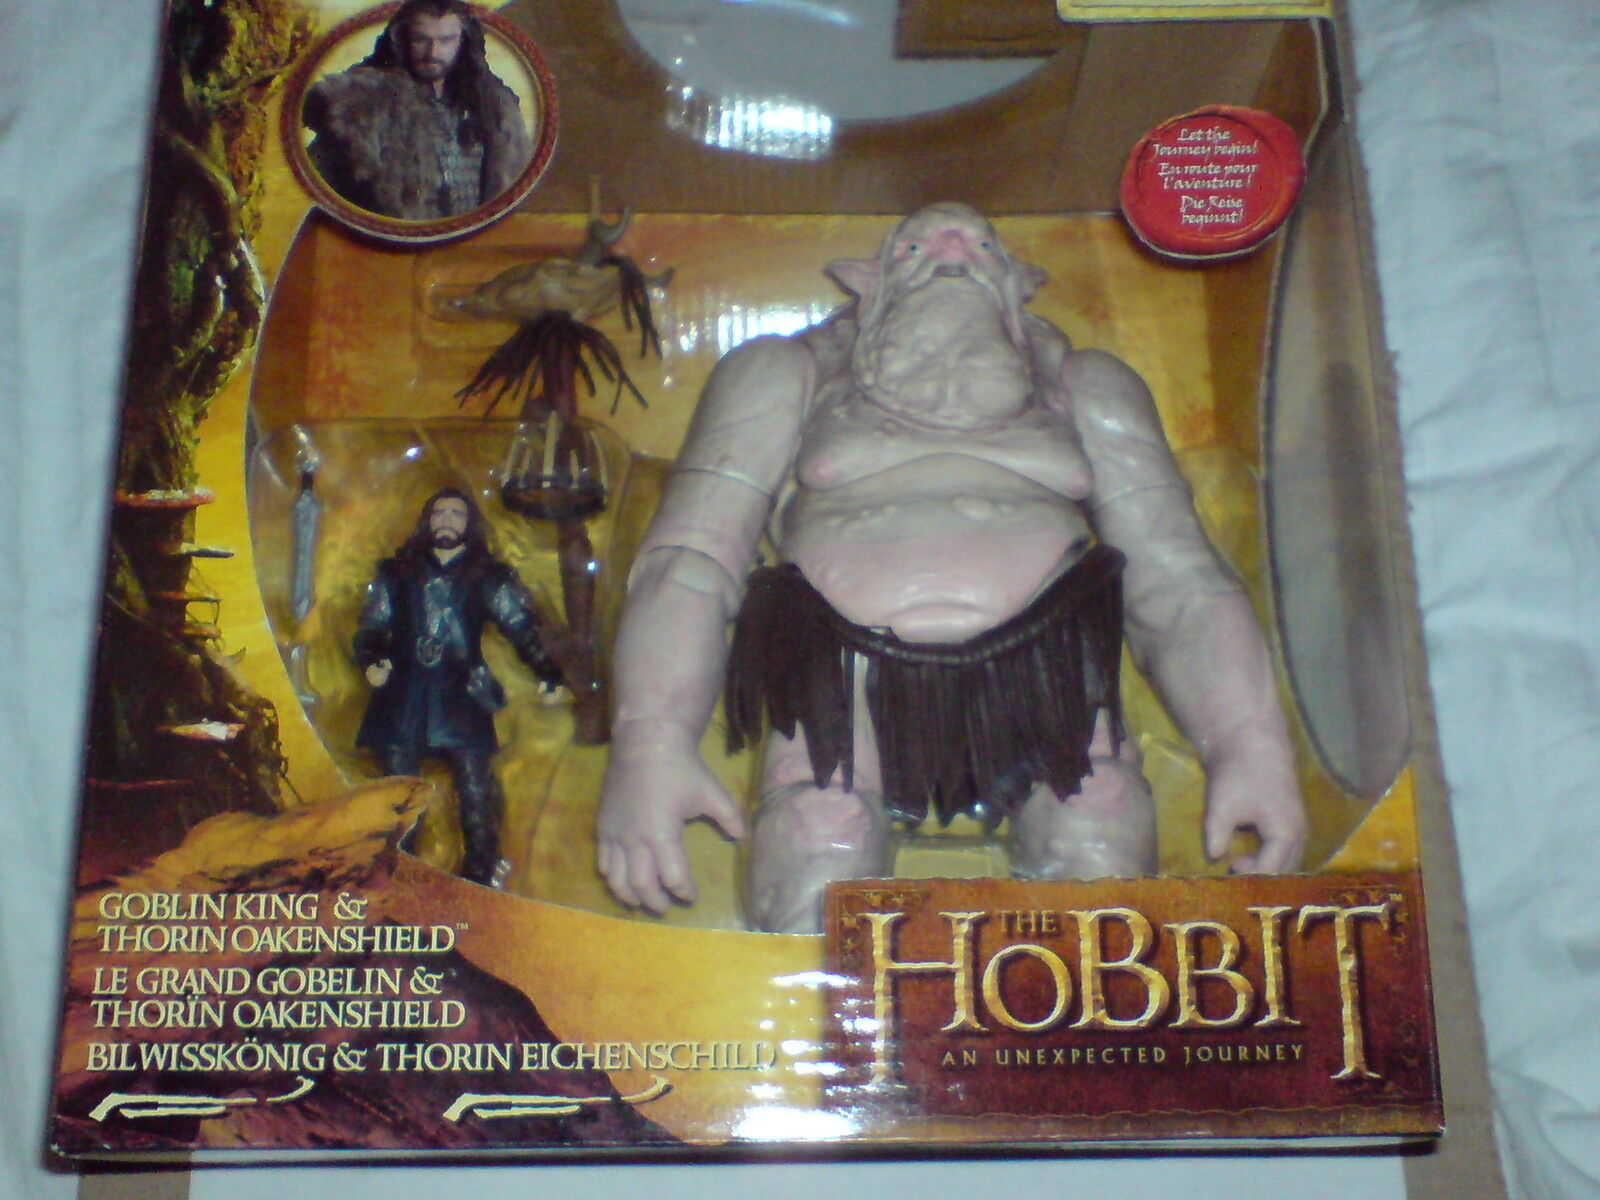 Lo HOBBITUN IMPREVISTO Jouney Hobbit Thorin  Pack di battaglia Re Goblin NUOVO CON SCATOLA